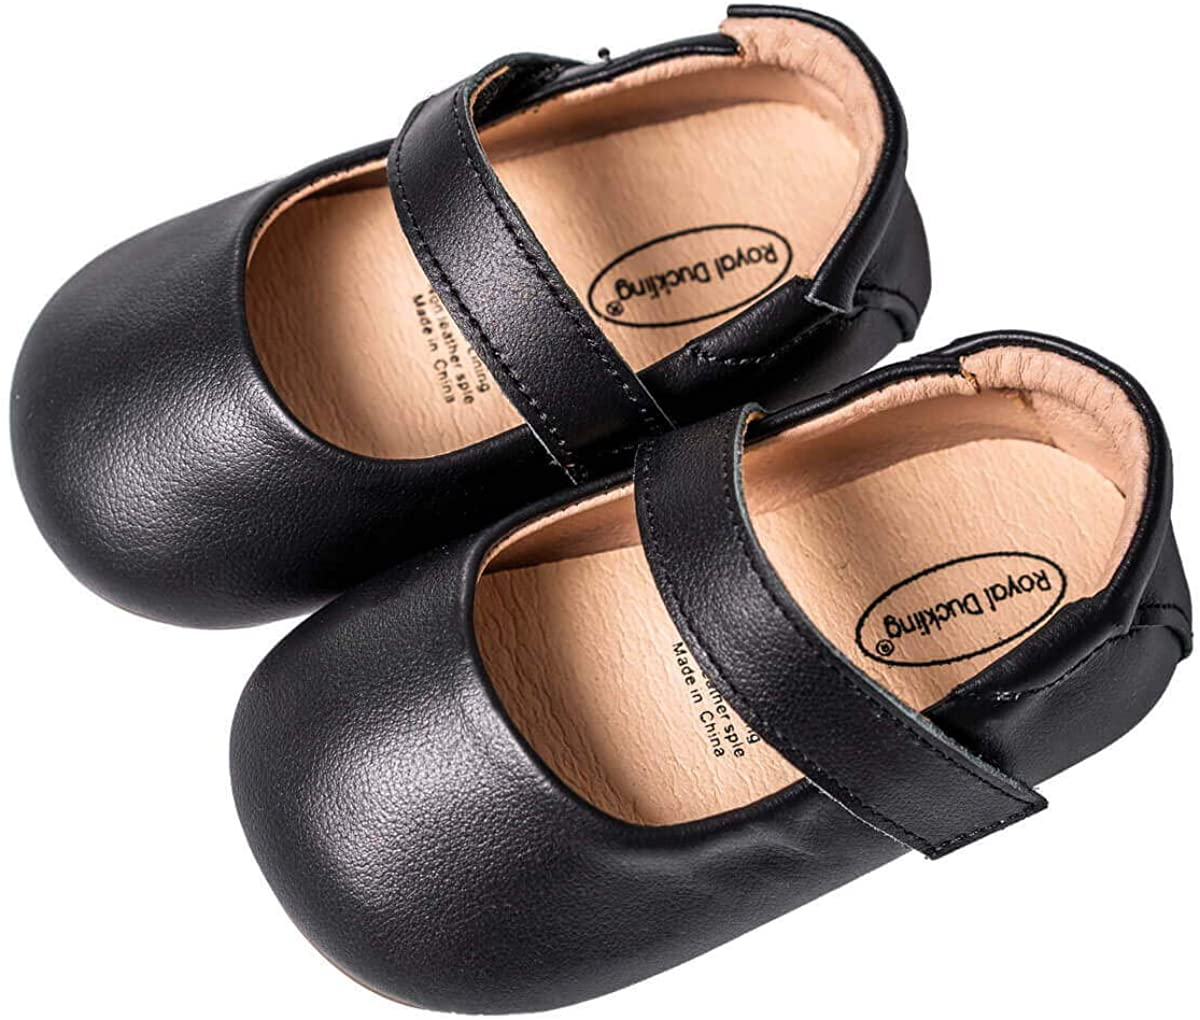 Mowoii Baby Girls Boys Leather Mary Jane Walking Shoes Prewalker Princess Wedding Dress Shoes Ballet Flats